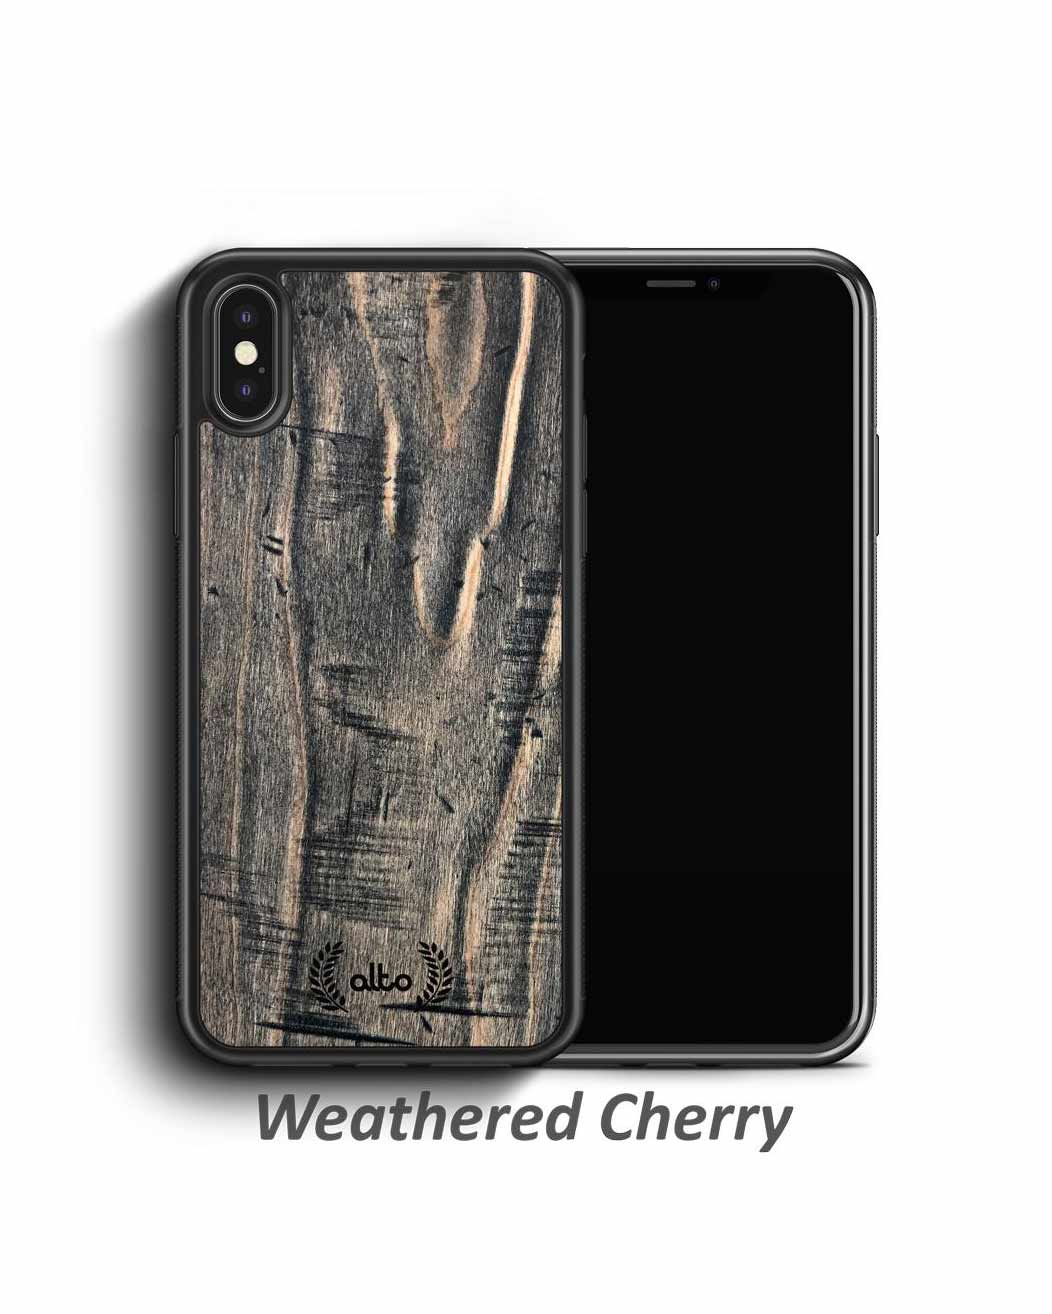 Real Weathered Wood Phone Cases - Cherry